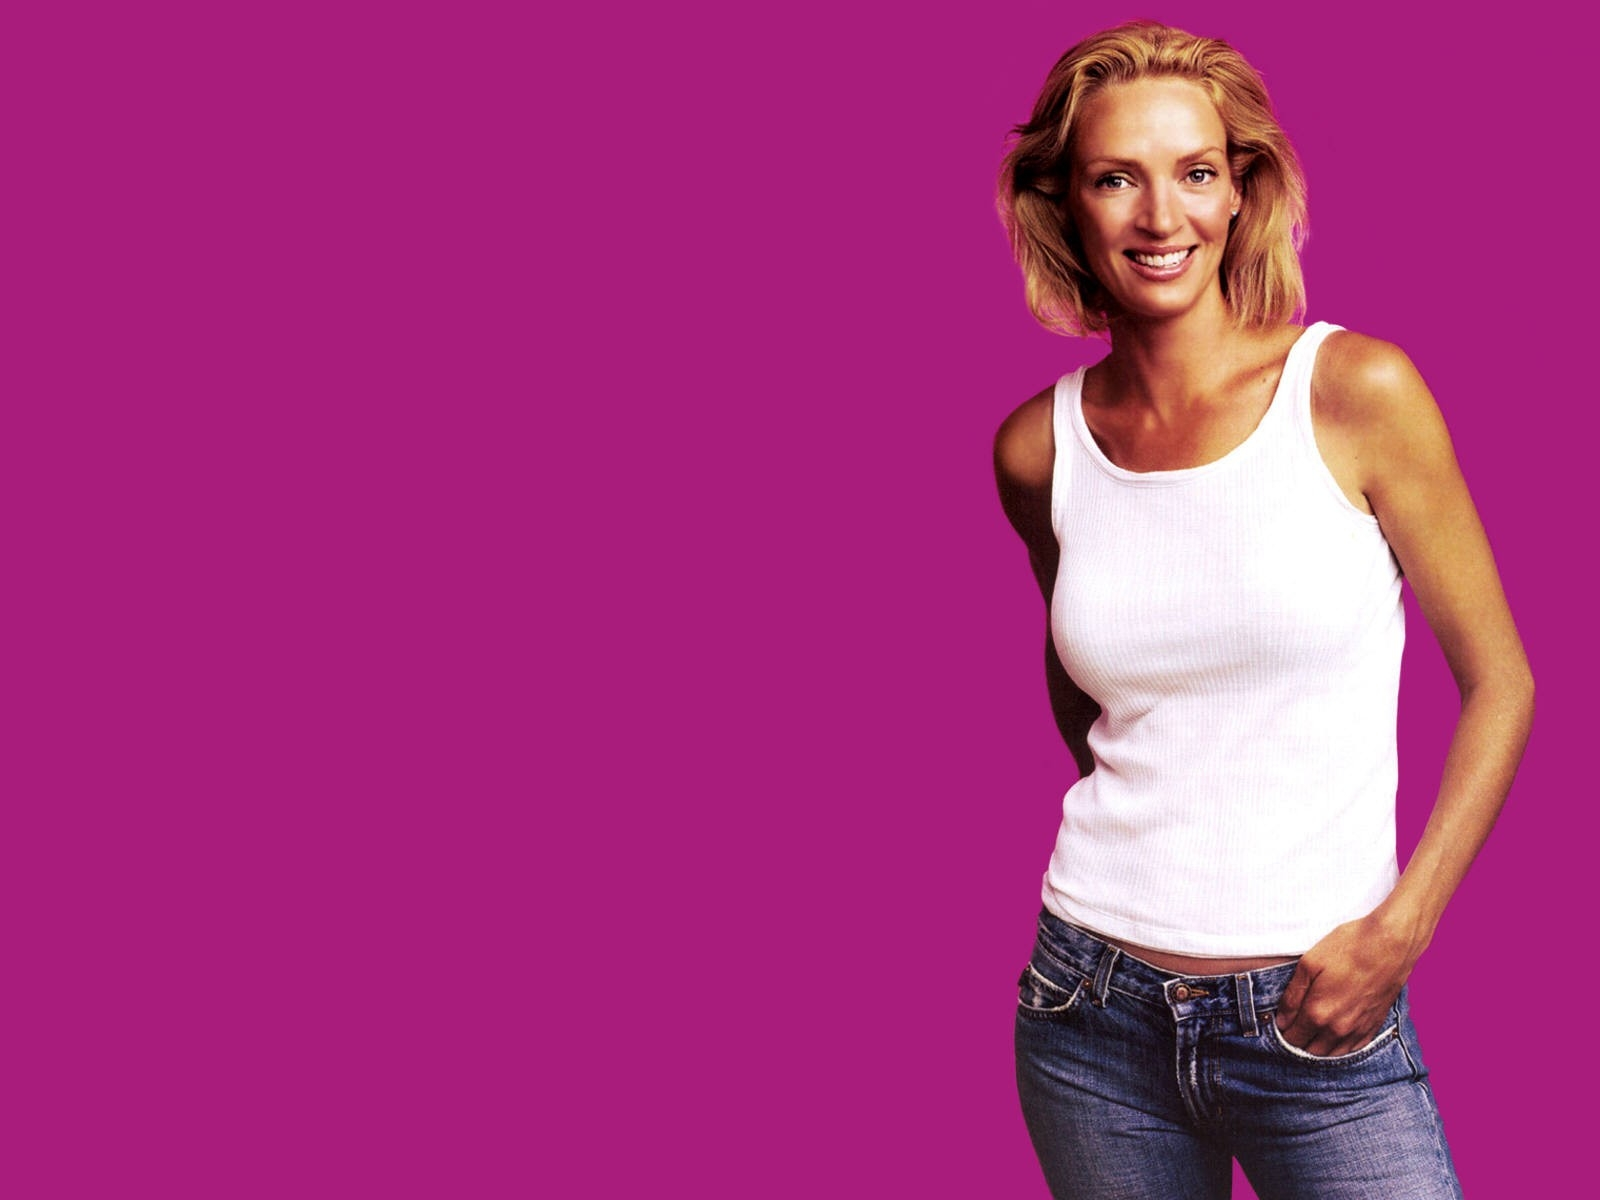 Wallpaper di Uma Thurman, sfondo fucsia